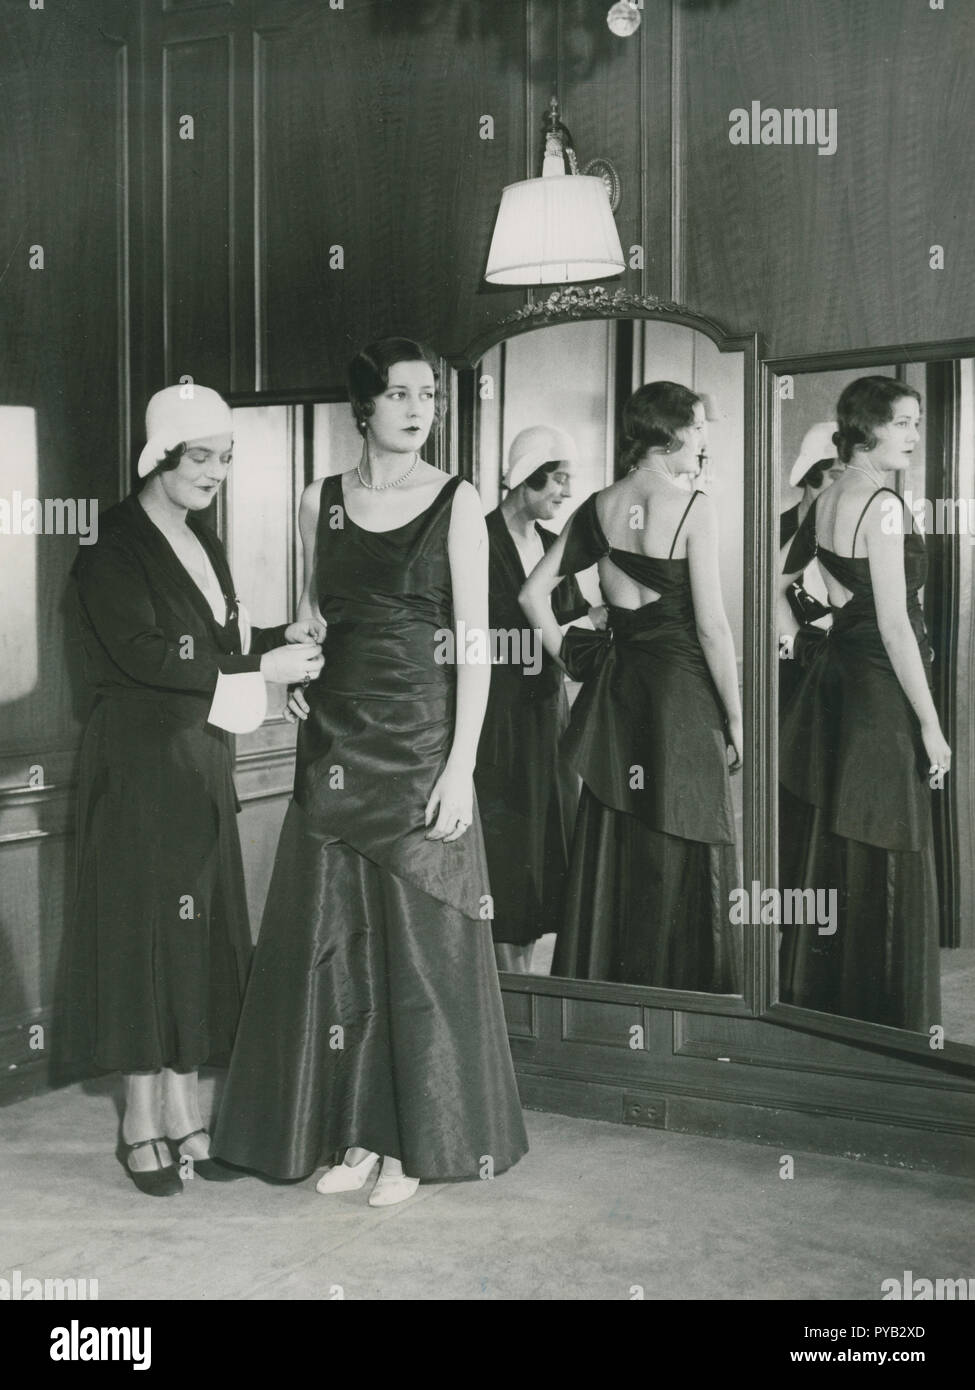 Ladies fashion in the 1930s. Pictured to the left  Grand Duchess Maria Pavlovna of Russia (1890–1958). She became interested in design and made business with Coco Chanel. She established herself as a fashiondesigner in America and her she presents an evening gown of her own design on Dec 17 1930. - Stock Image